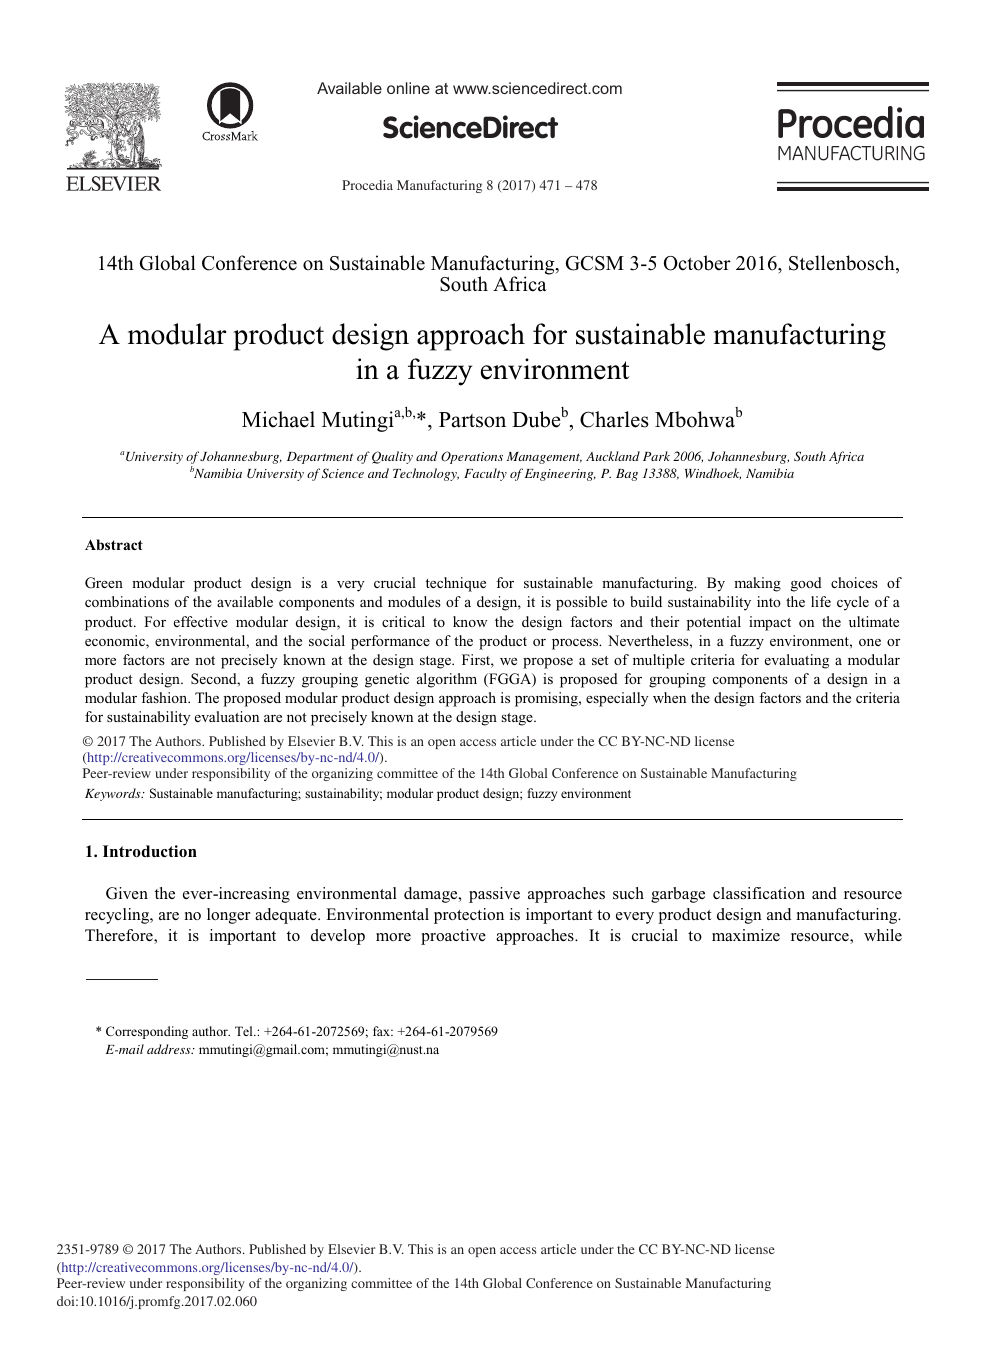 A Modular Product Design Approach For Sustainable Manufacturing In A Fuzzy Environment Topic Of Research Paper In Materials Engineering Download Scholarly Article Pdf And Read For Free On Cyberleninka Open Science